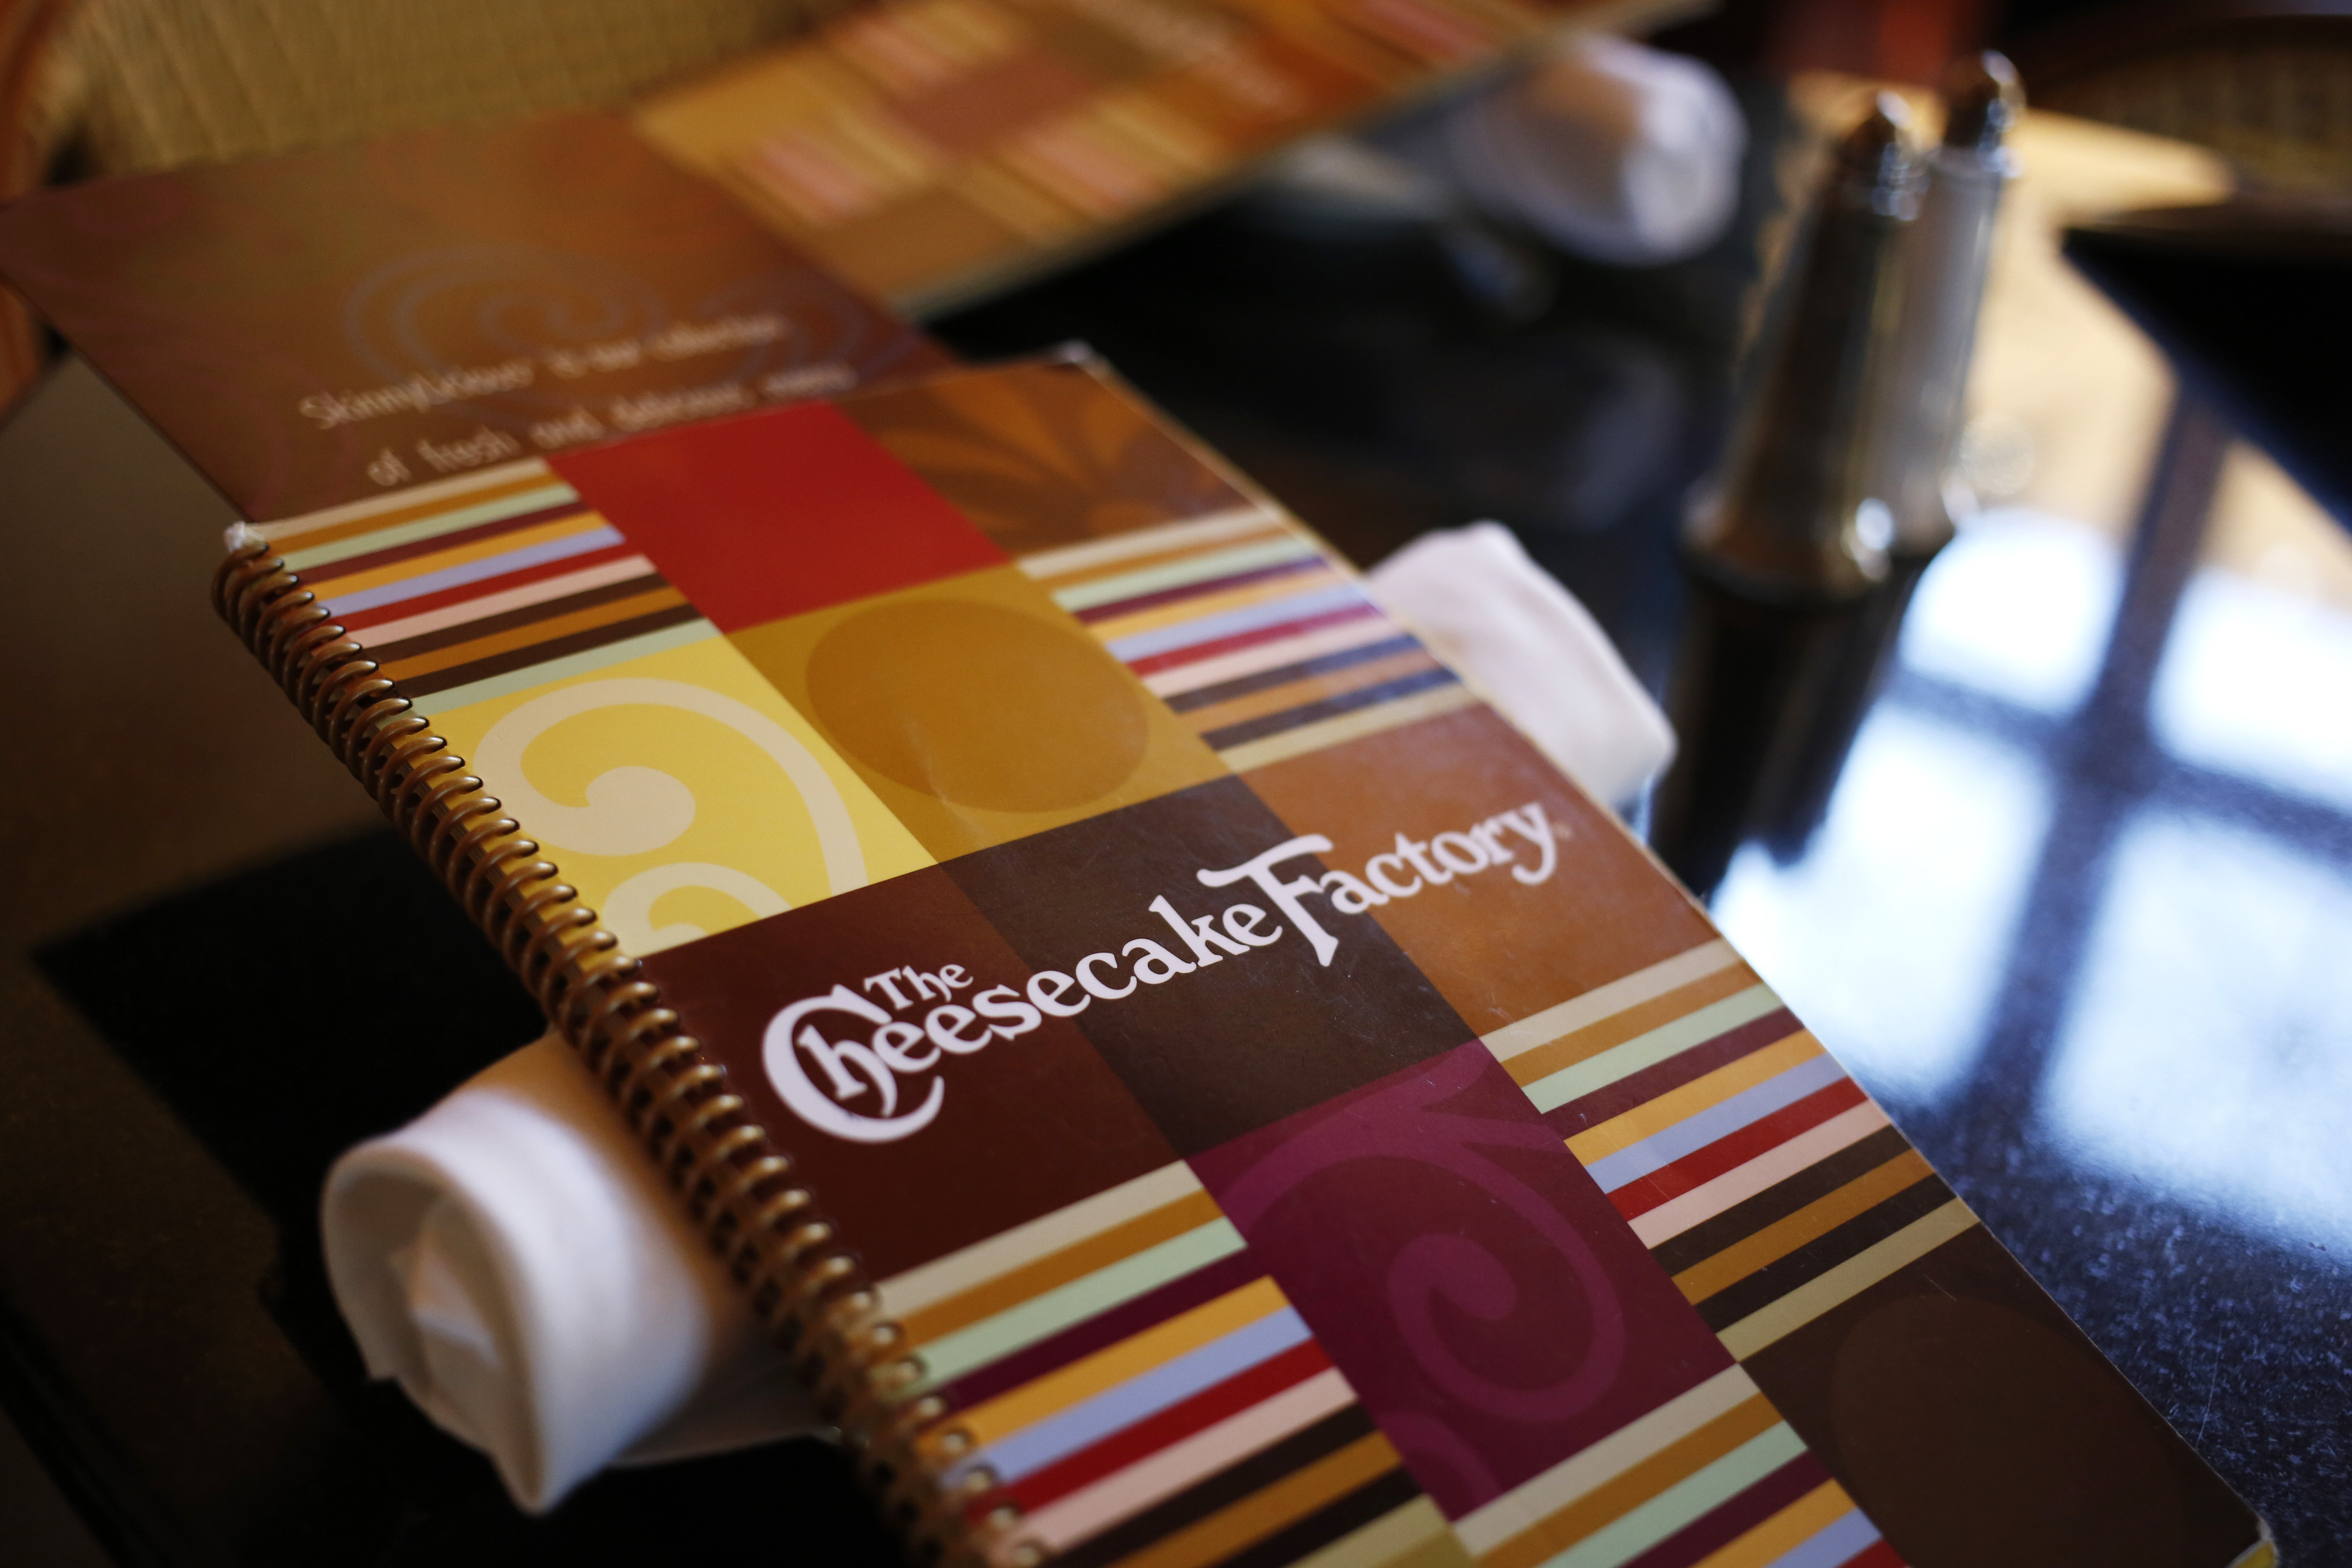 food industry market research cheesecake factory menu